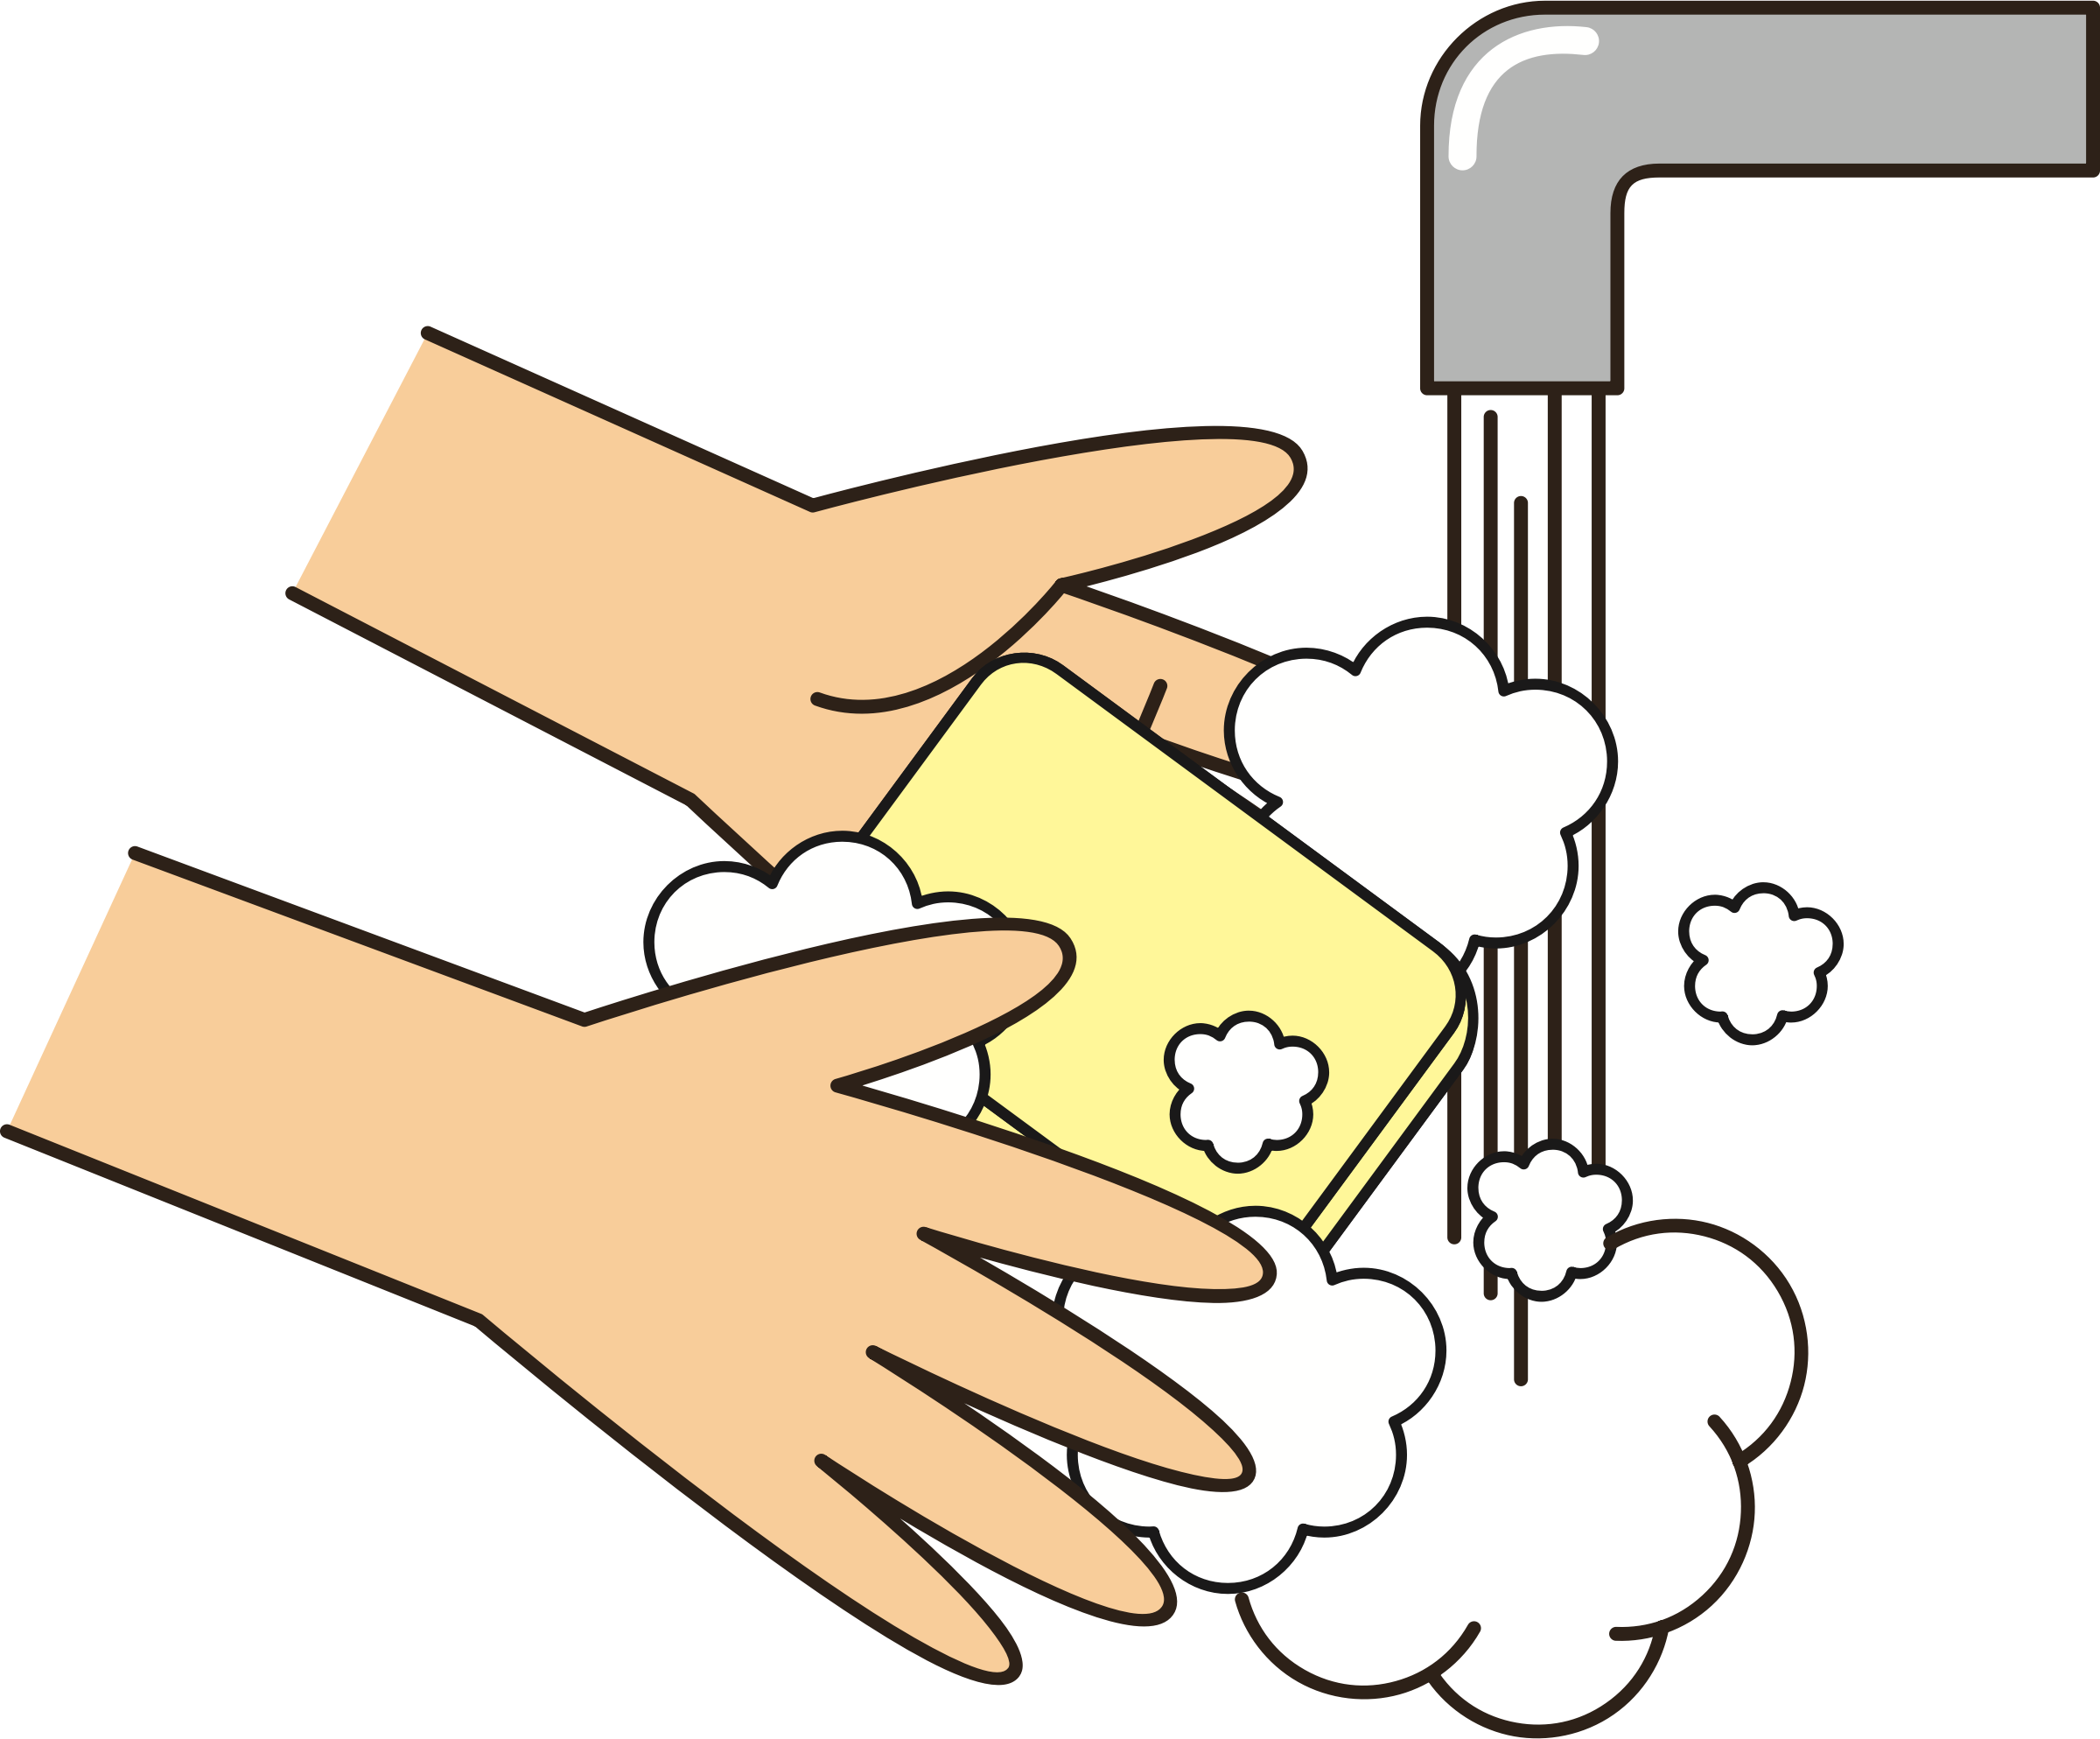 graphic free download Wash clipart wash board. Your hands with soap